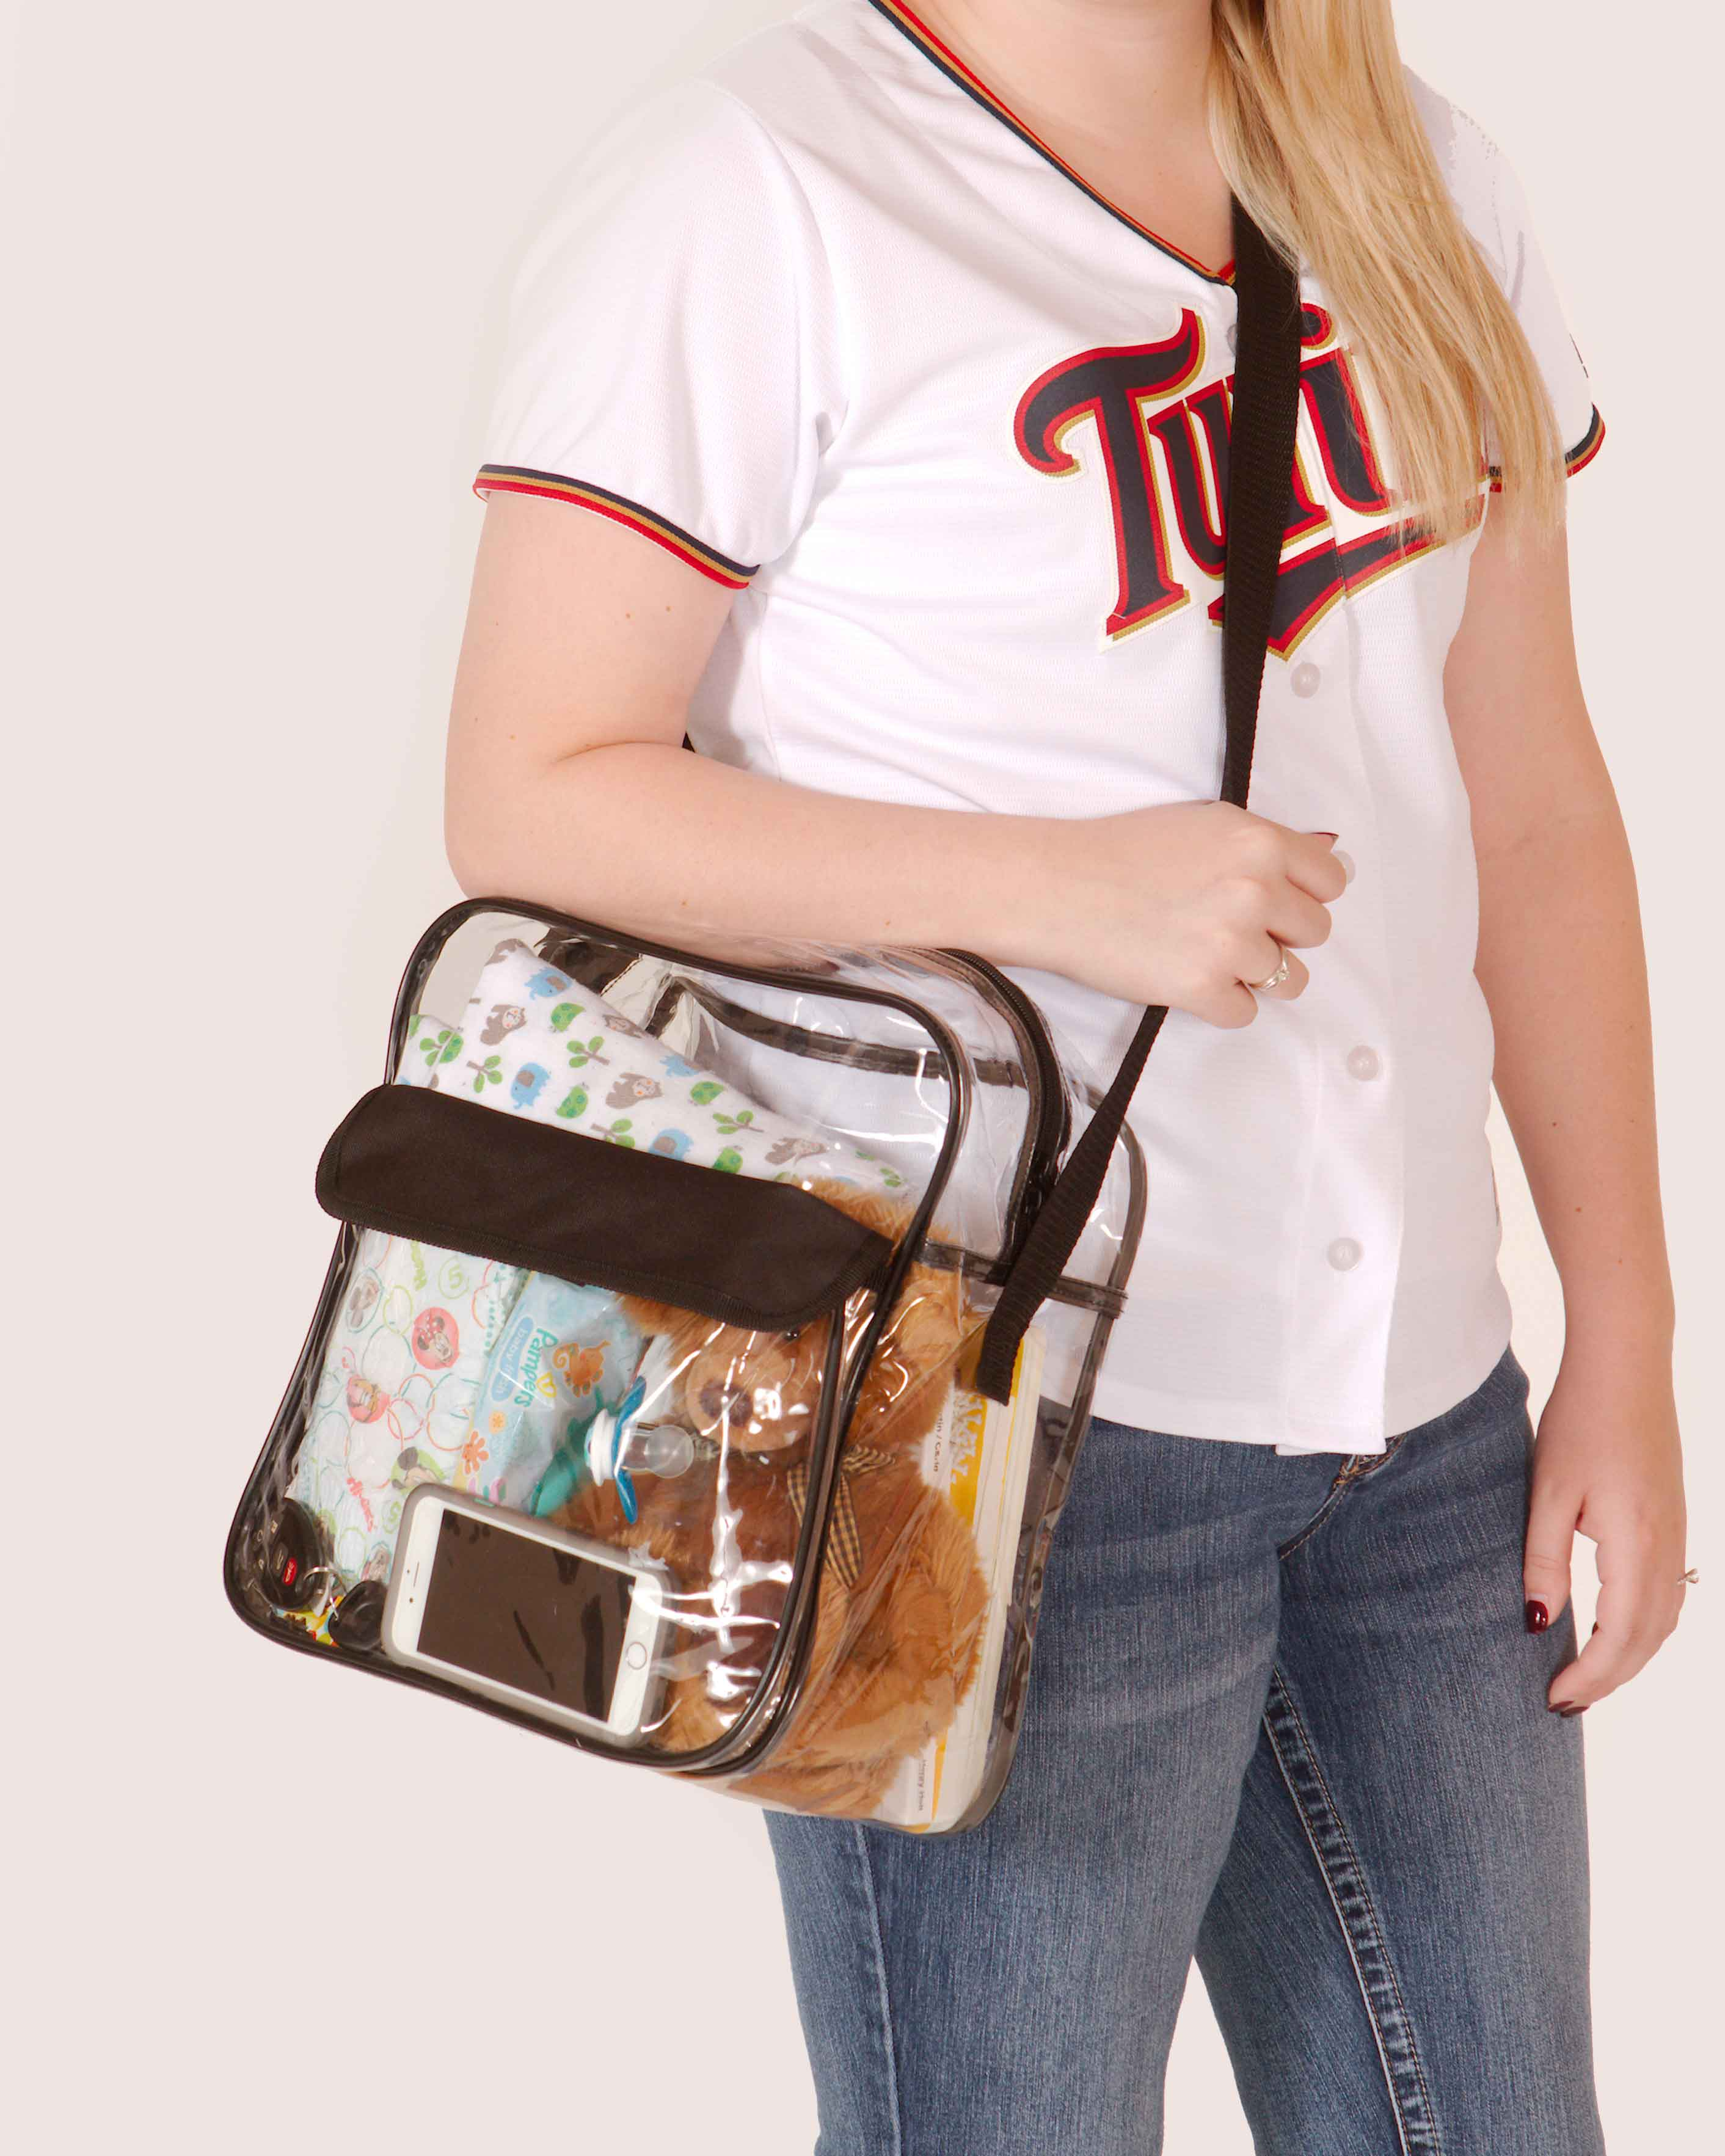 Clear-Purse-NFL-Stadium-Approved-Bag-with-Zipper-and-Shoulder-Strap thumbnail 22